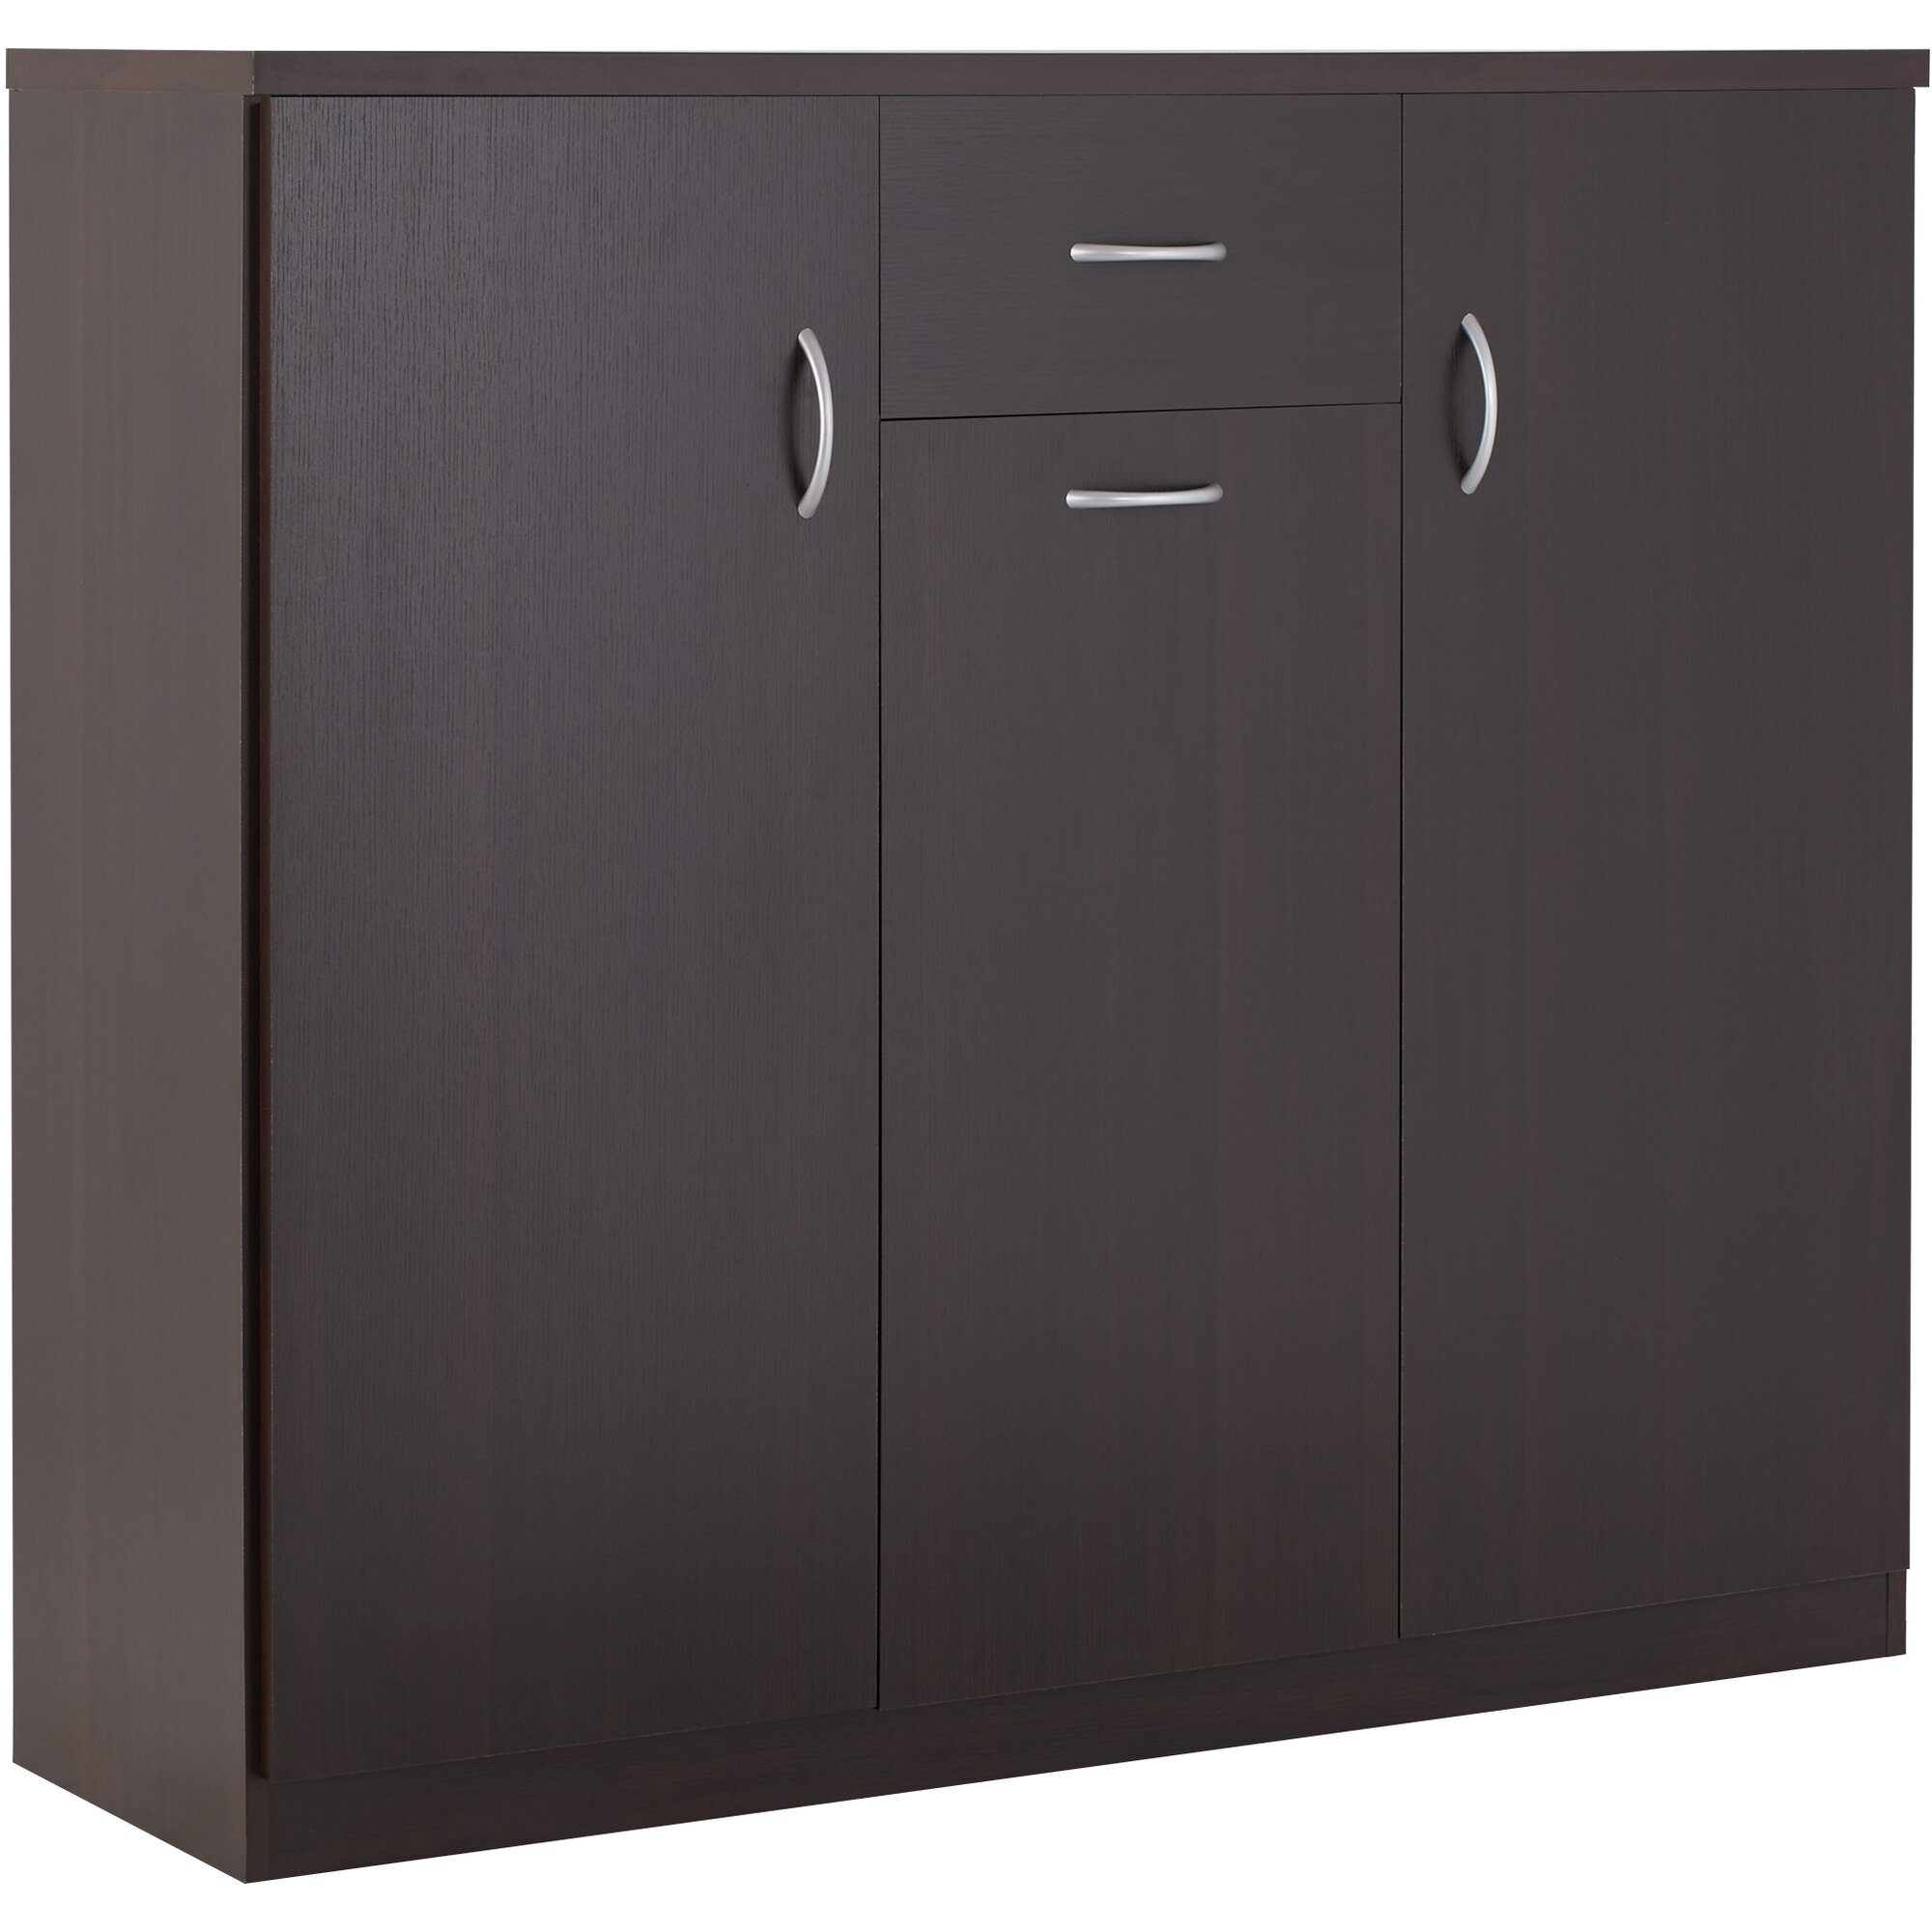 Wood 30Pair Shoe Storage CabinetReviewsAllModern